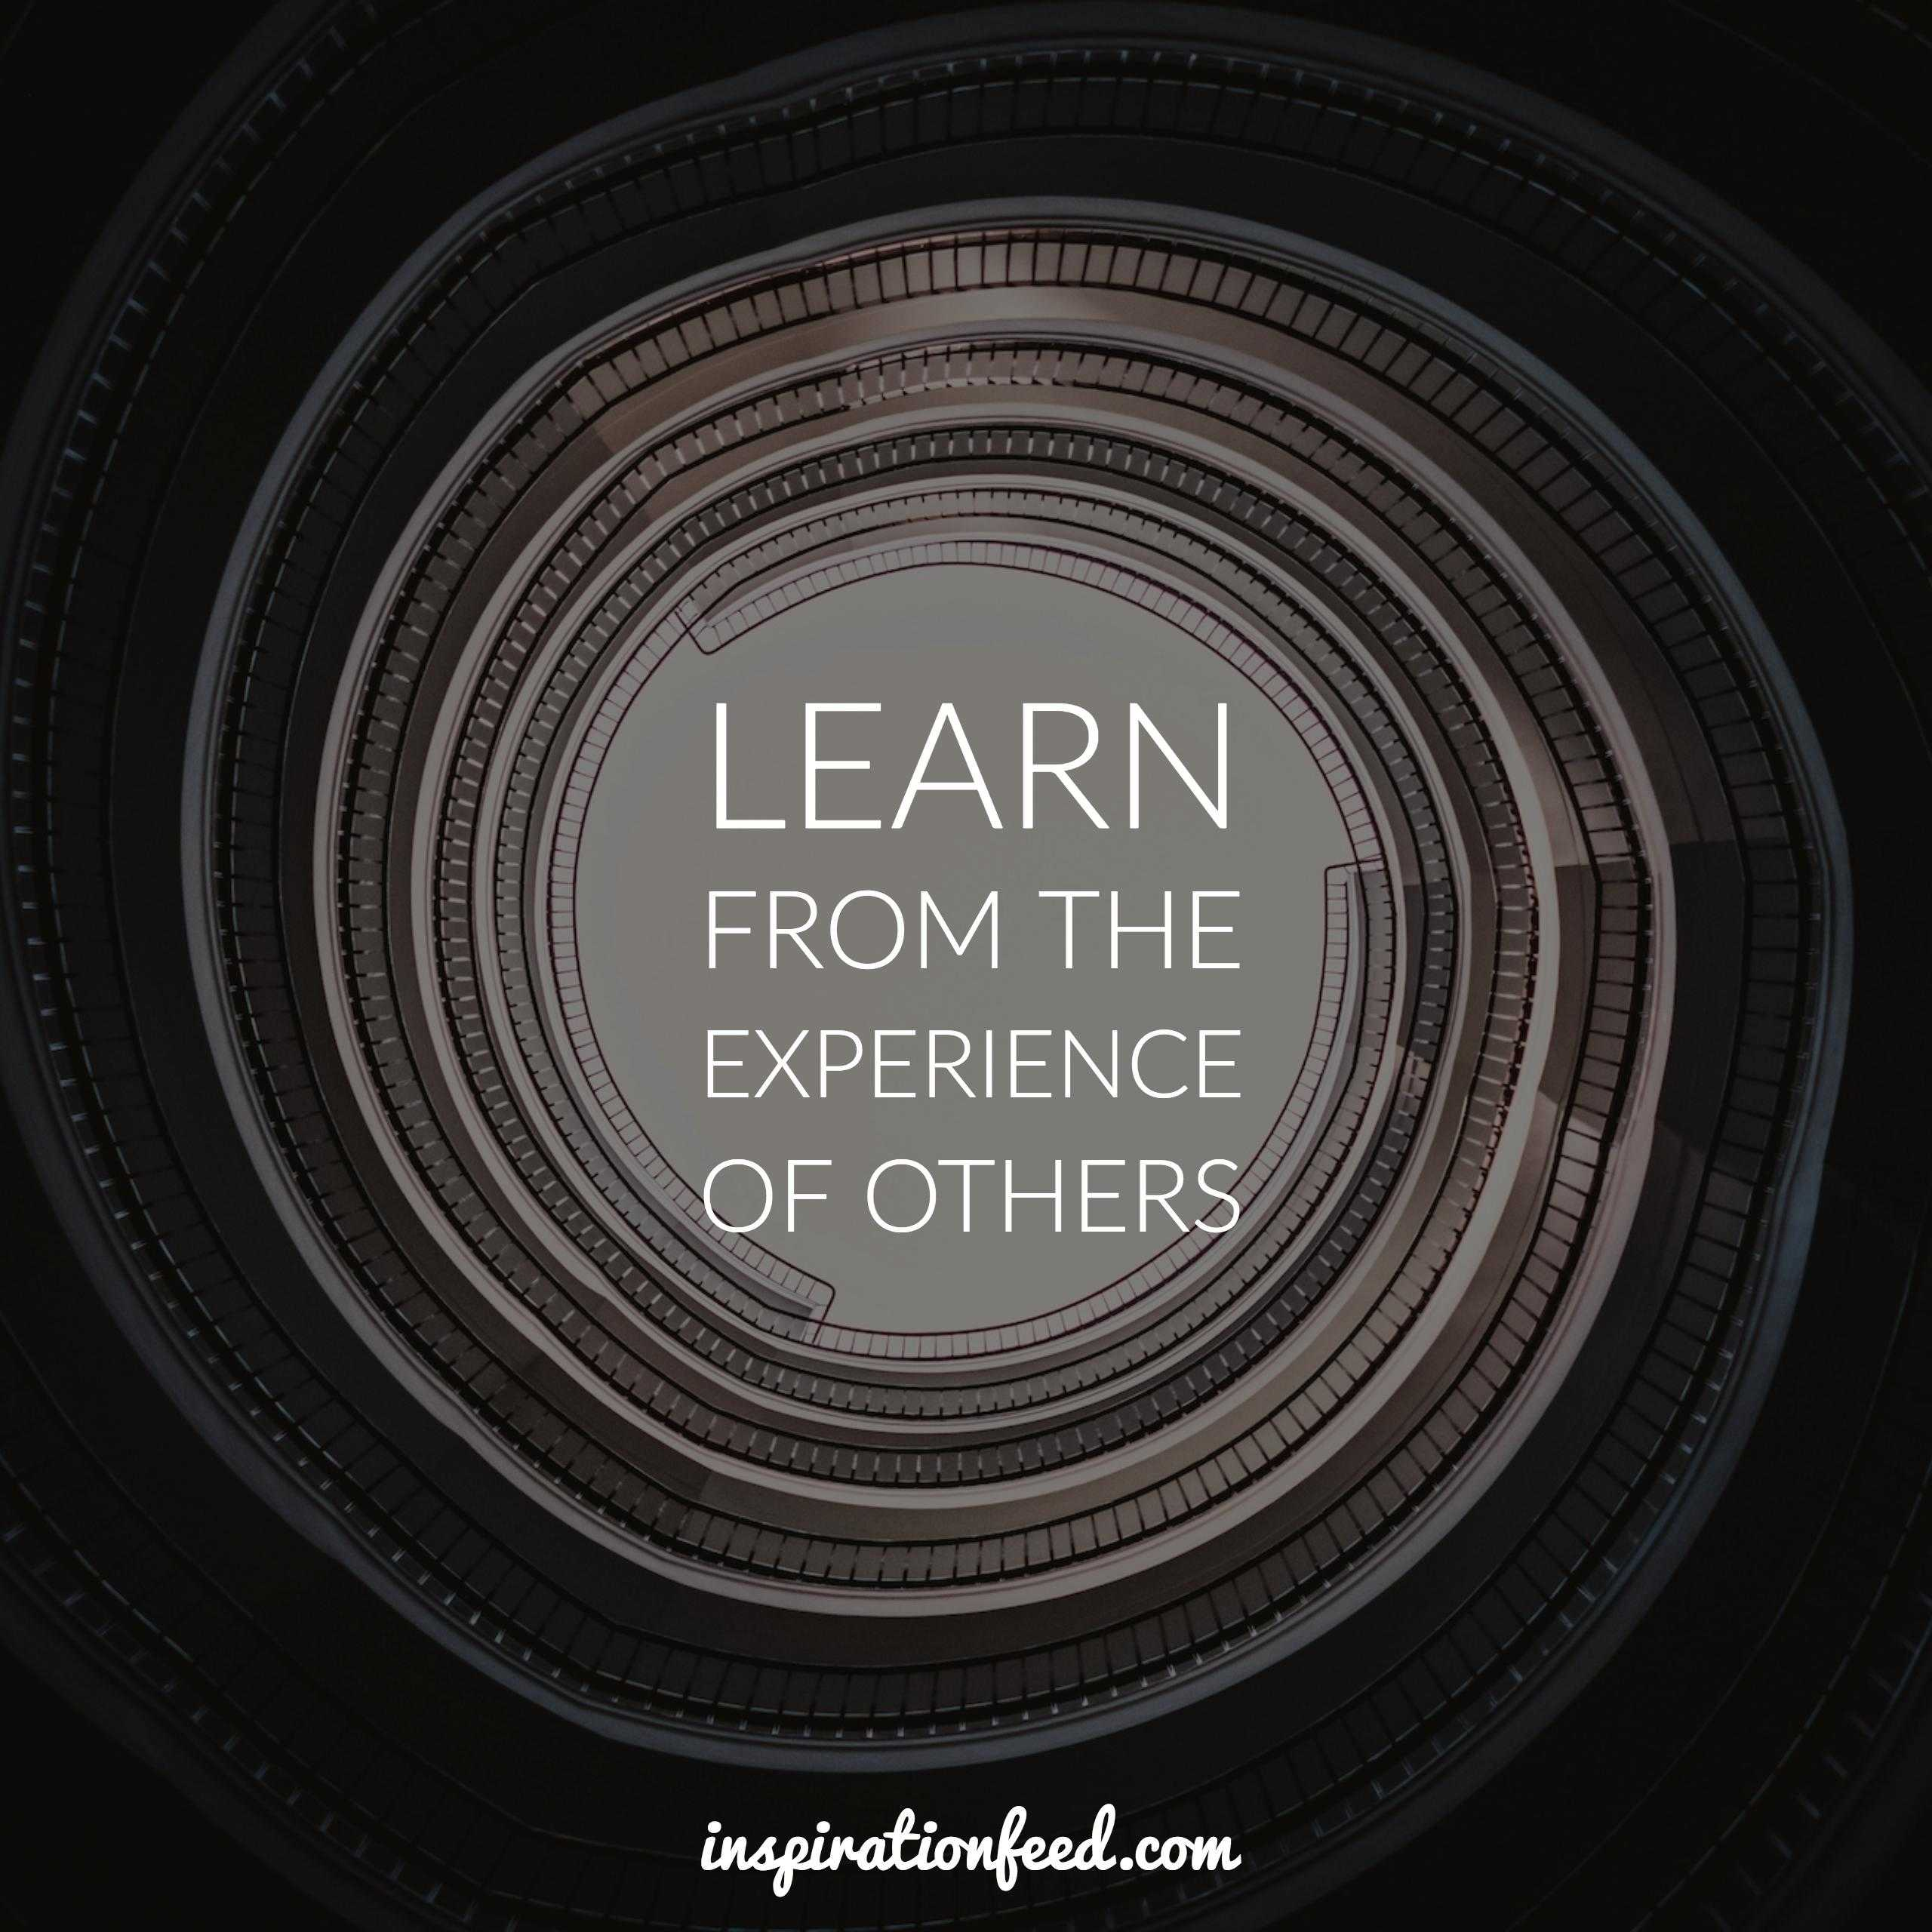 learn-from-the-experience-of-others